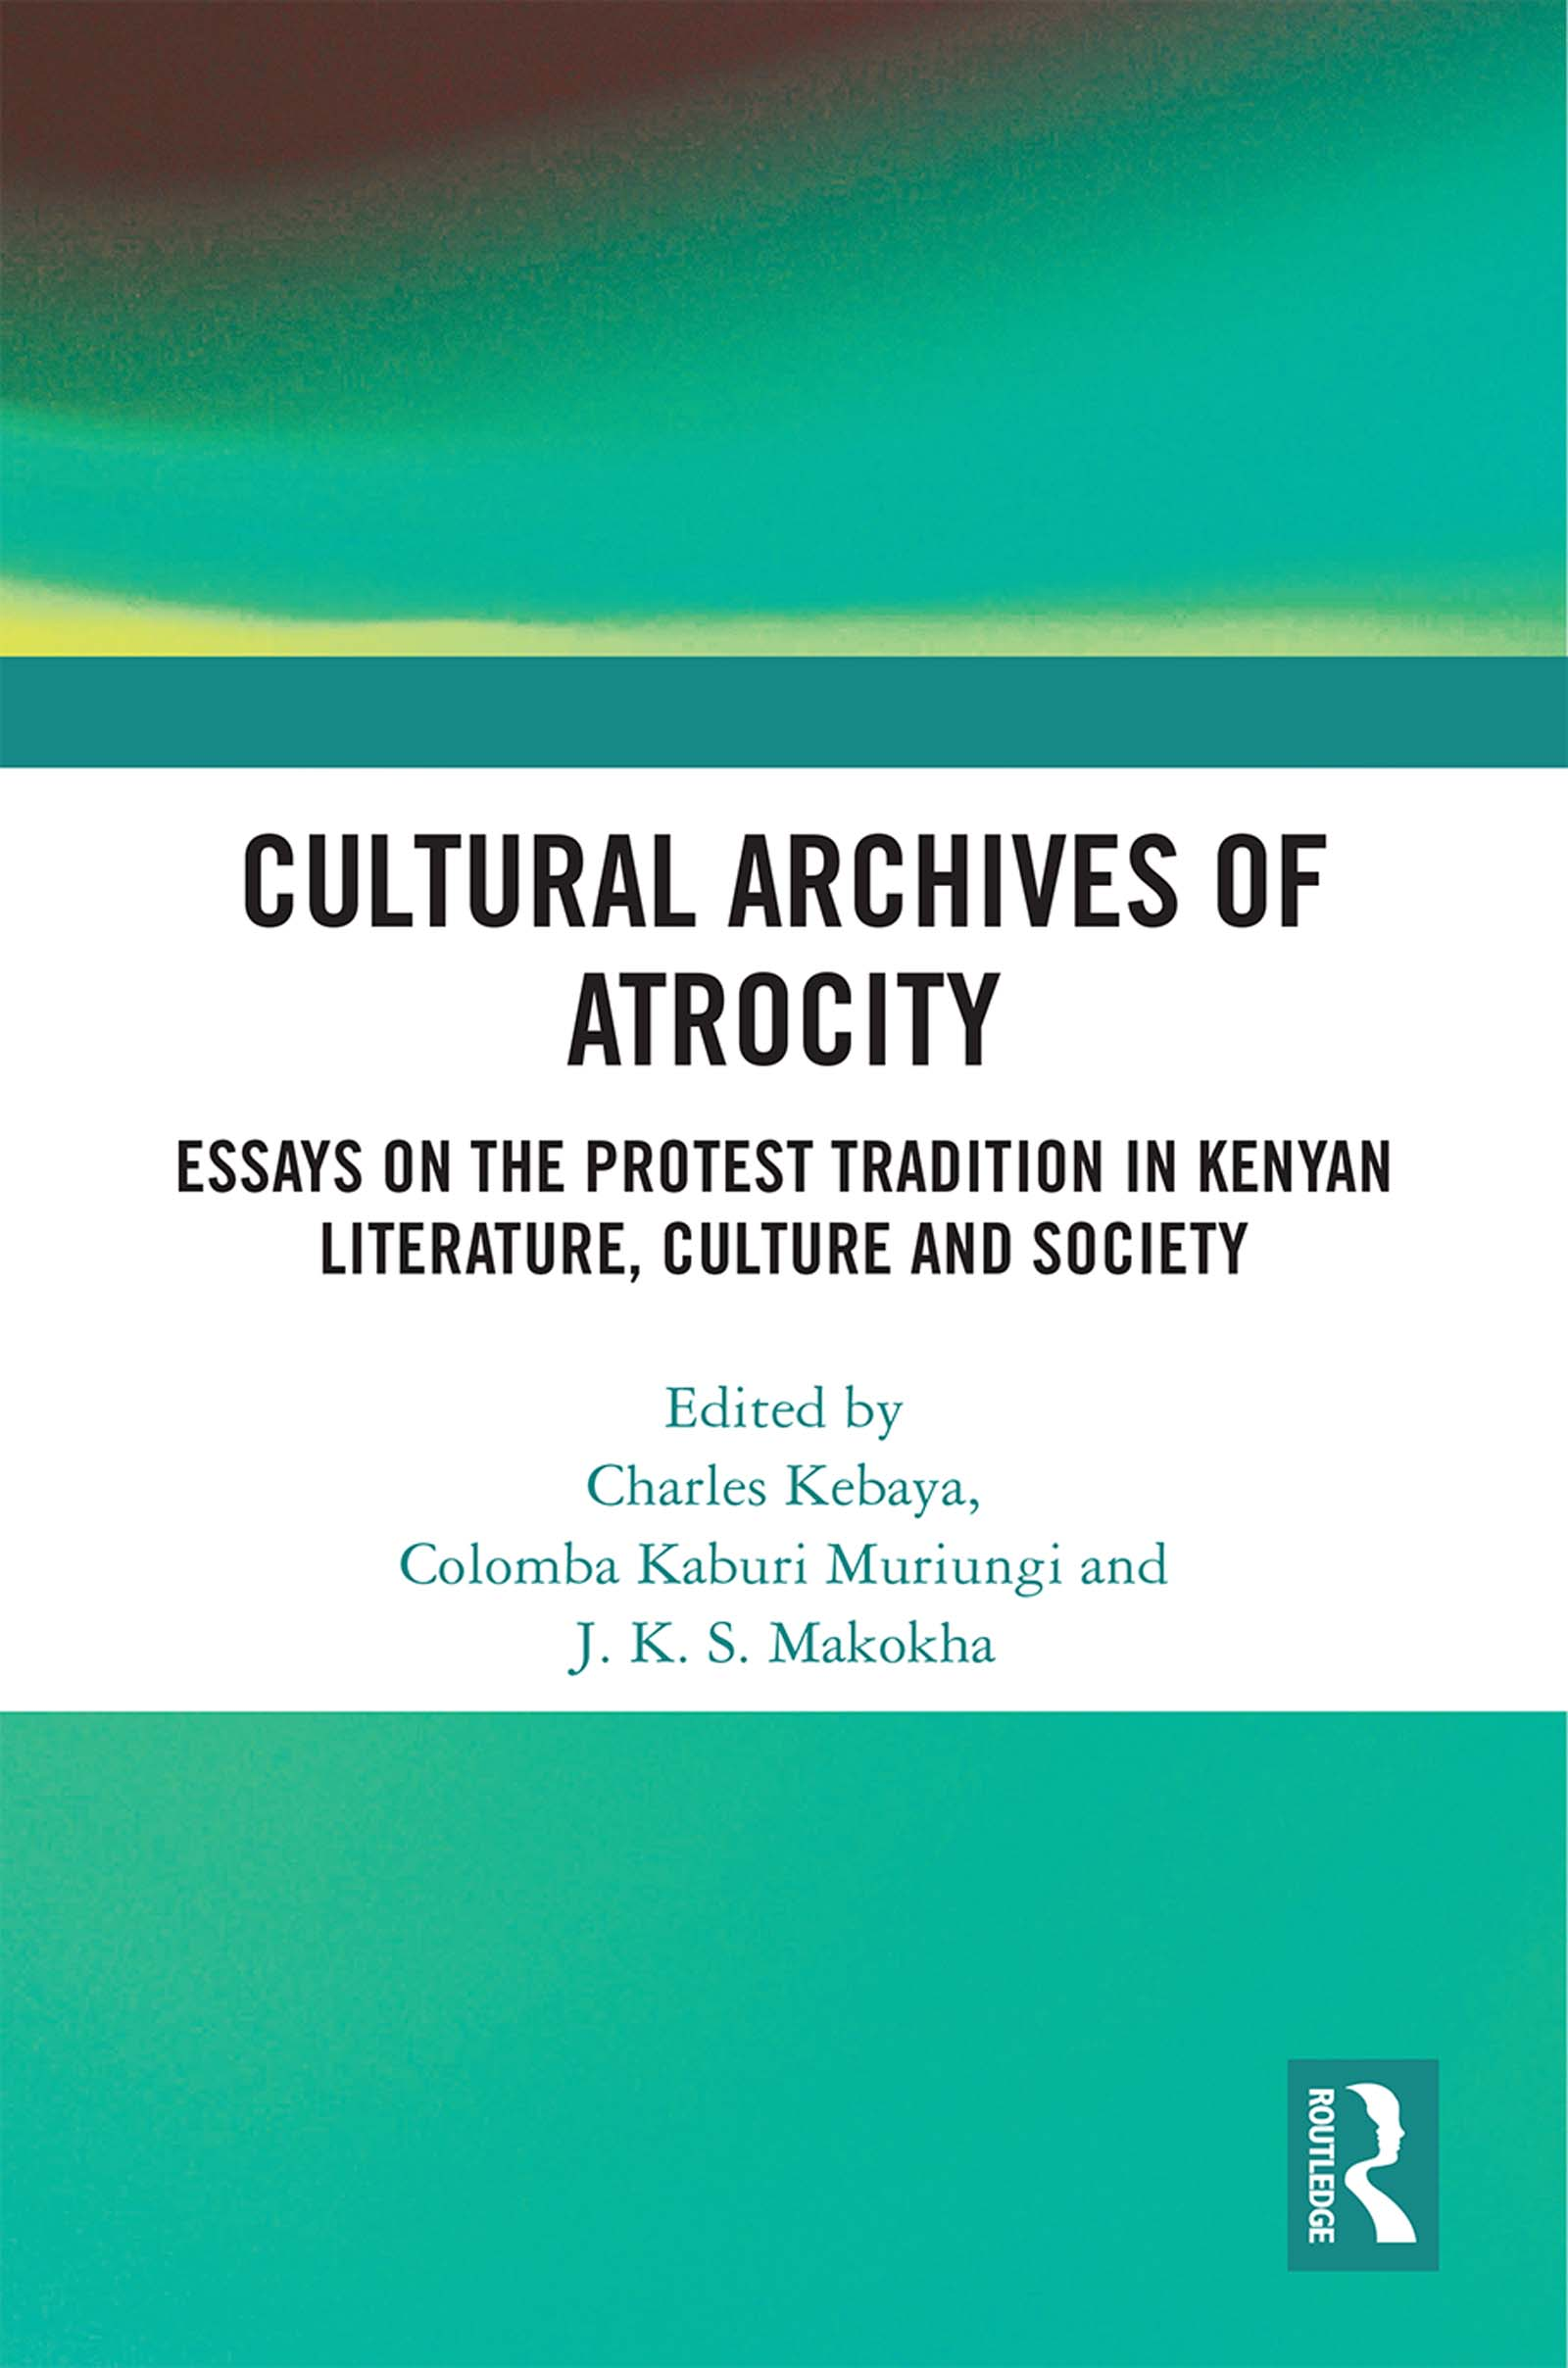 Cultural Archives of Atrocity: Essays on the Protest Tradition in Kenyan Literature, Culture and Society book cover